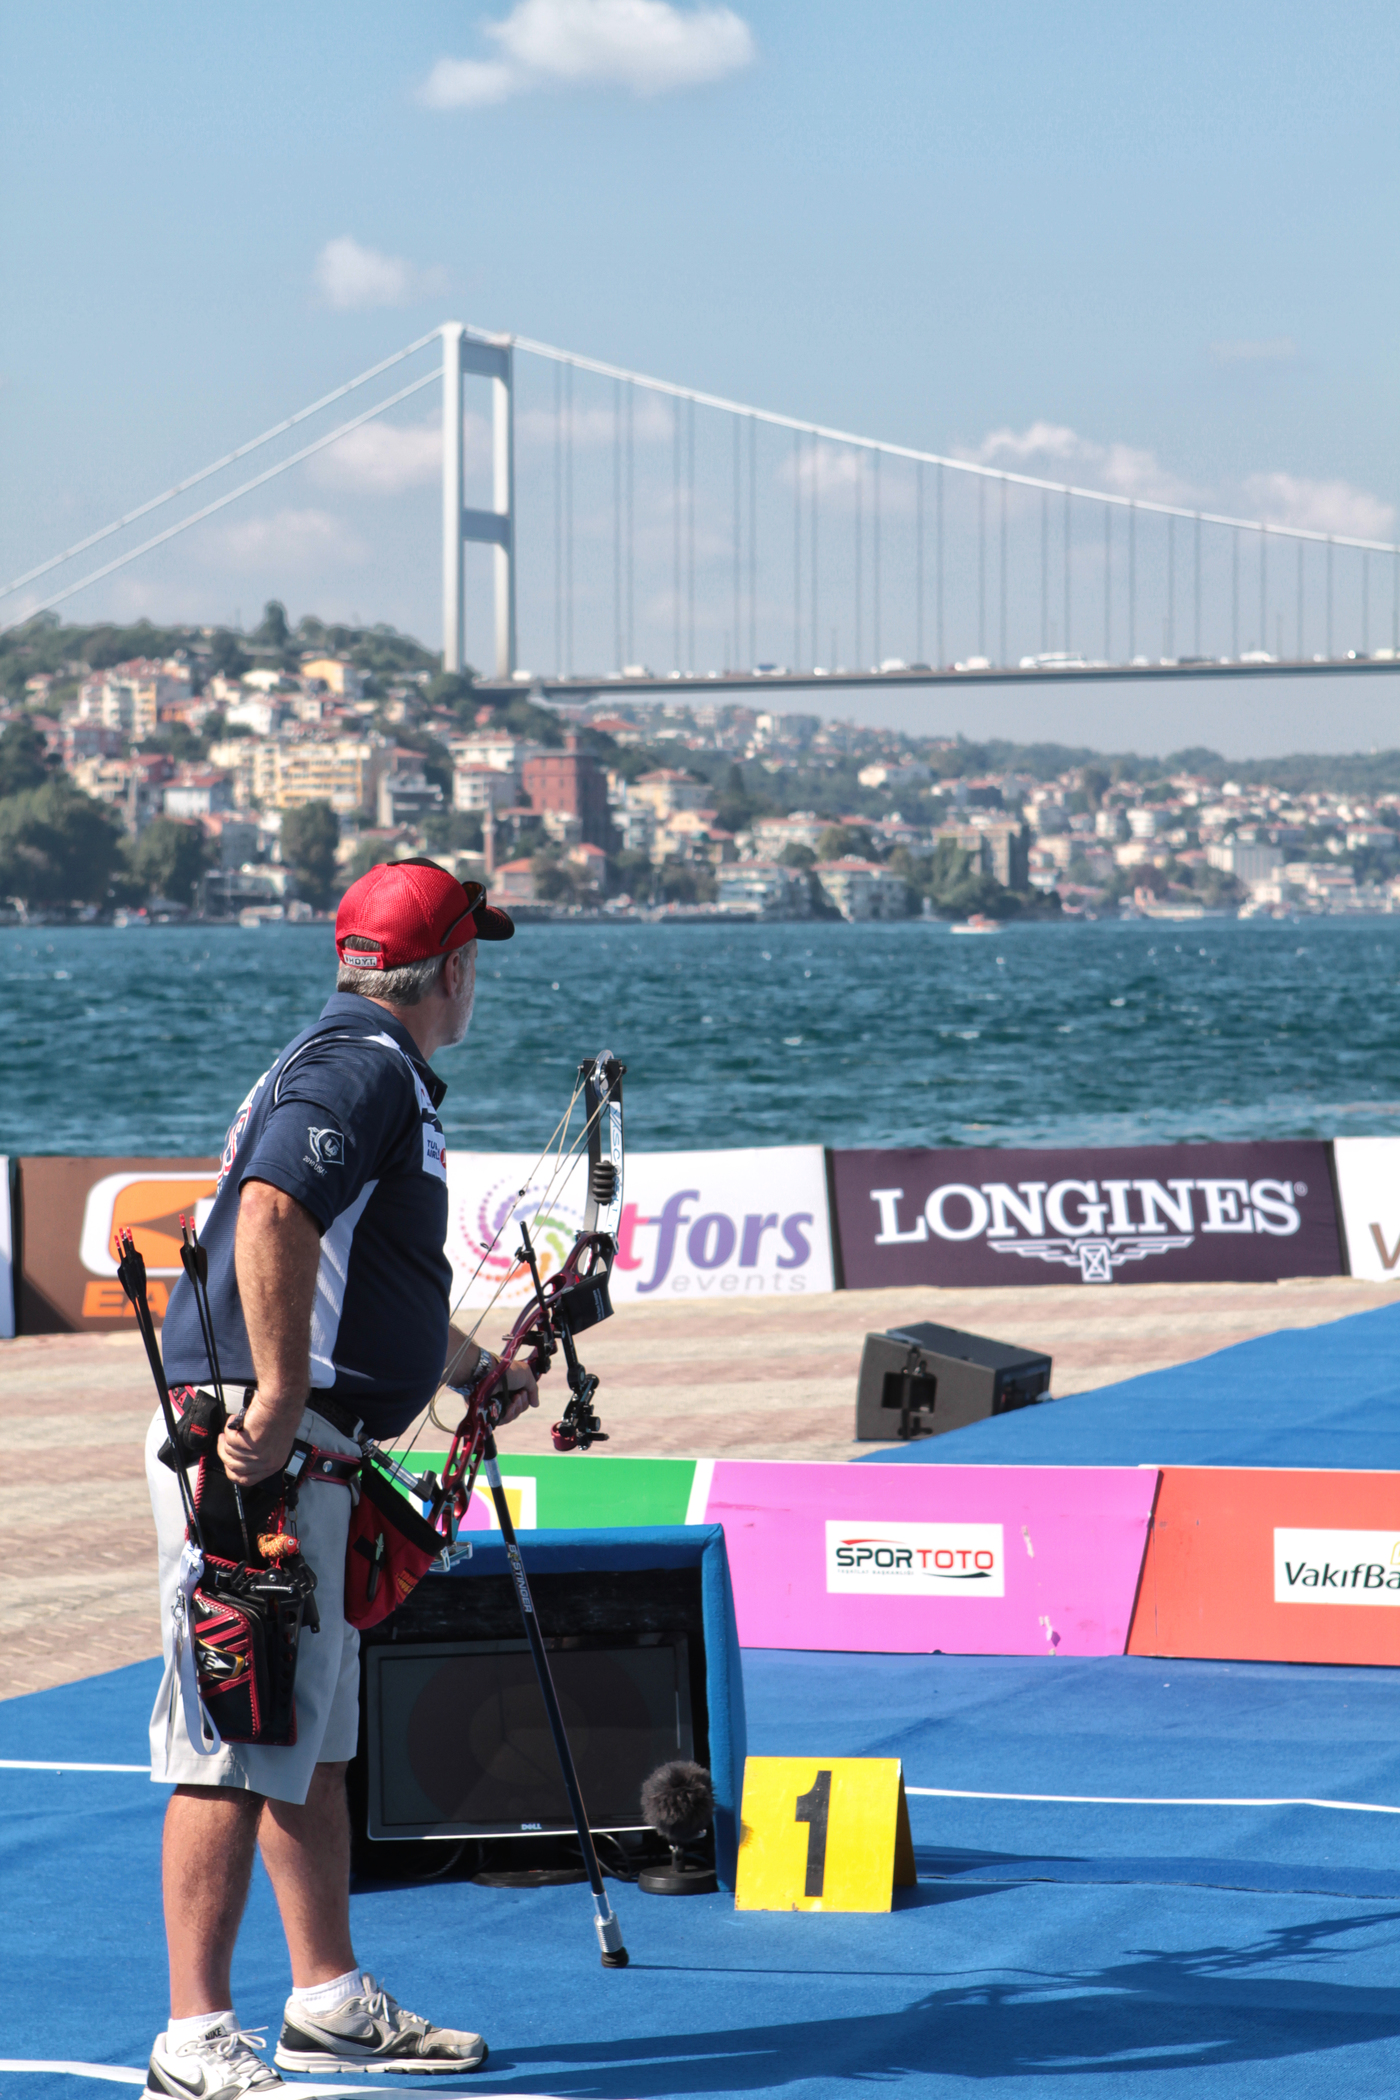 Longines Archery Event: The winners of the 2011 Longines Prize for Precision for archery 2